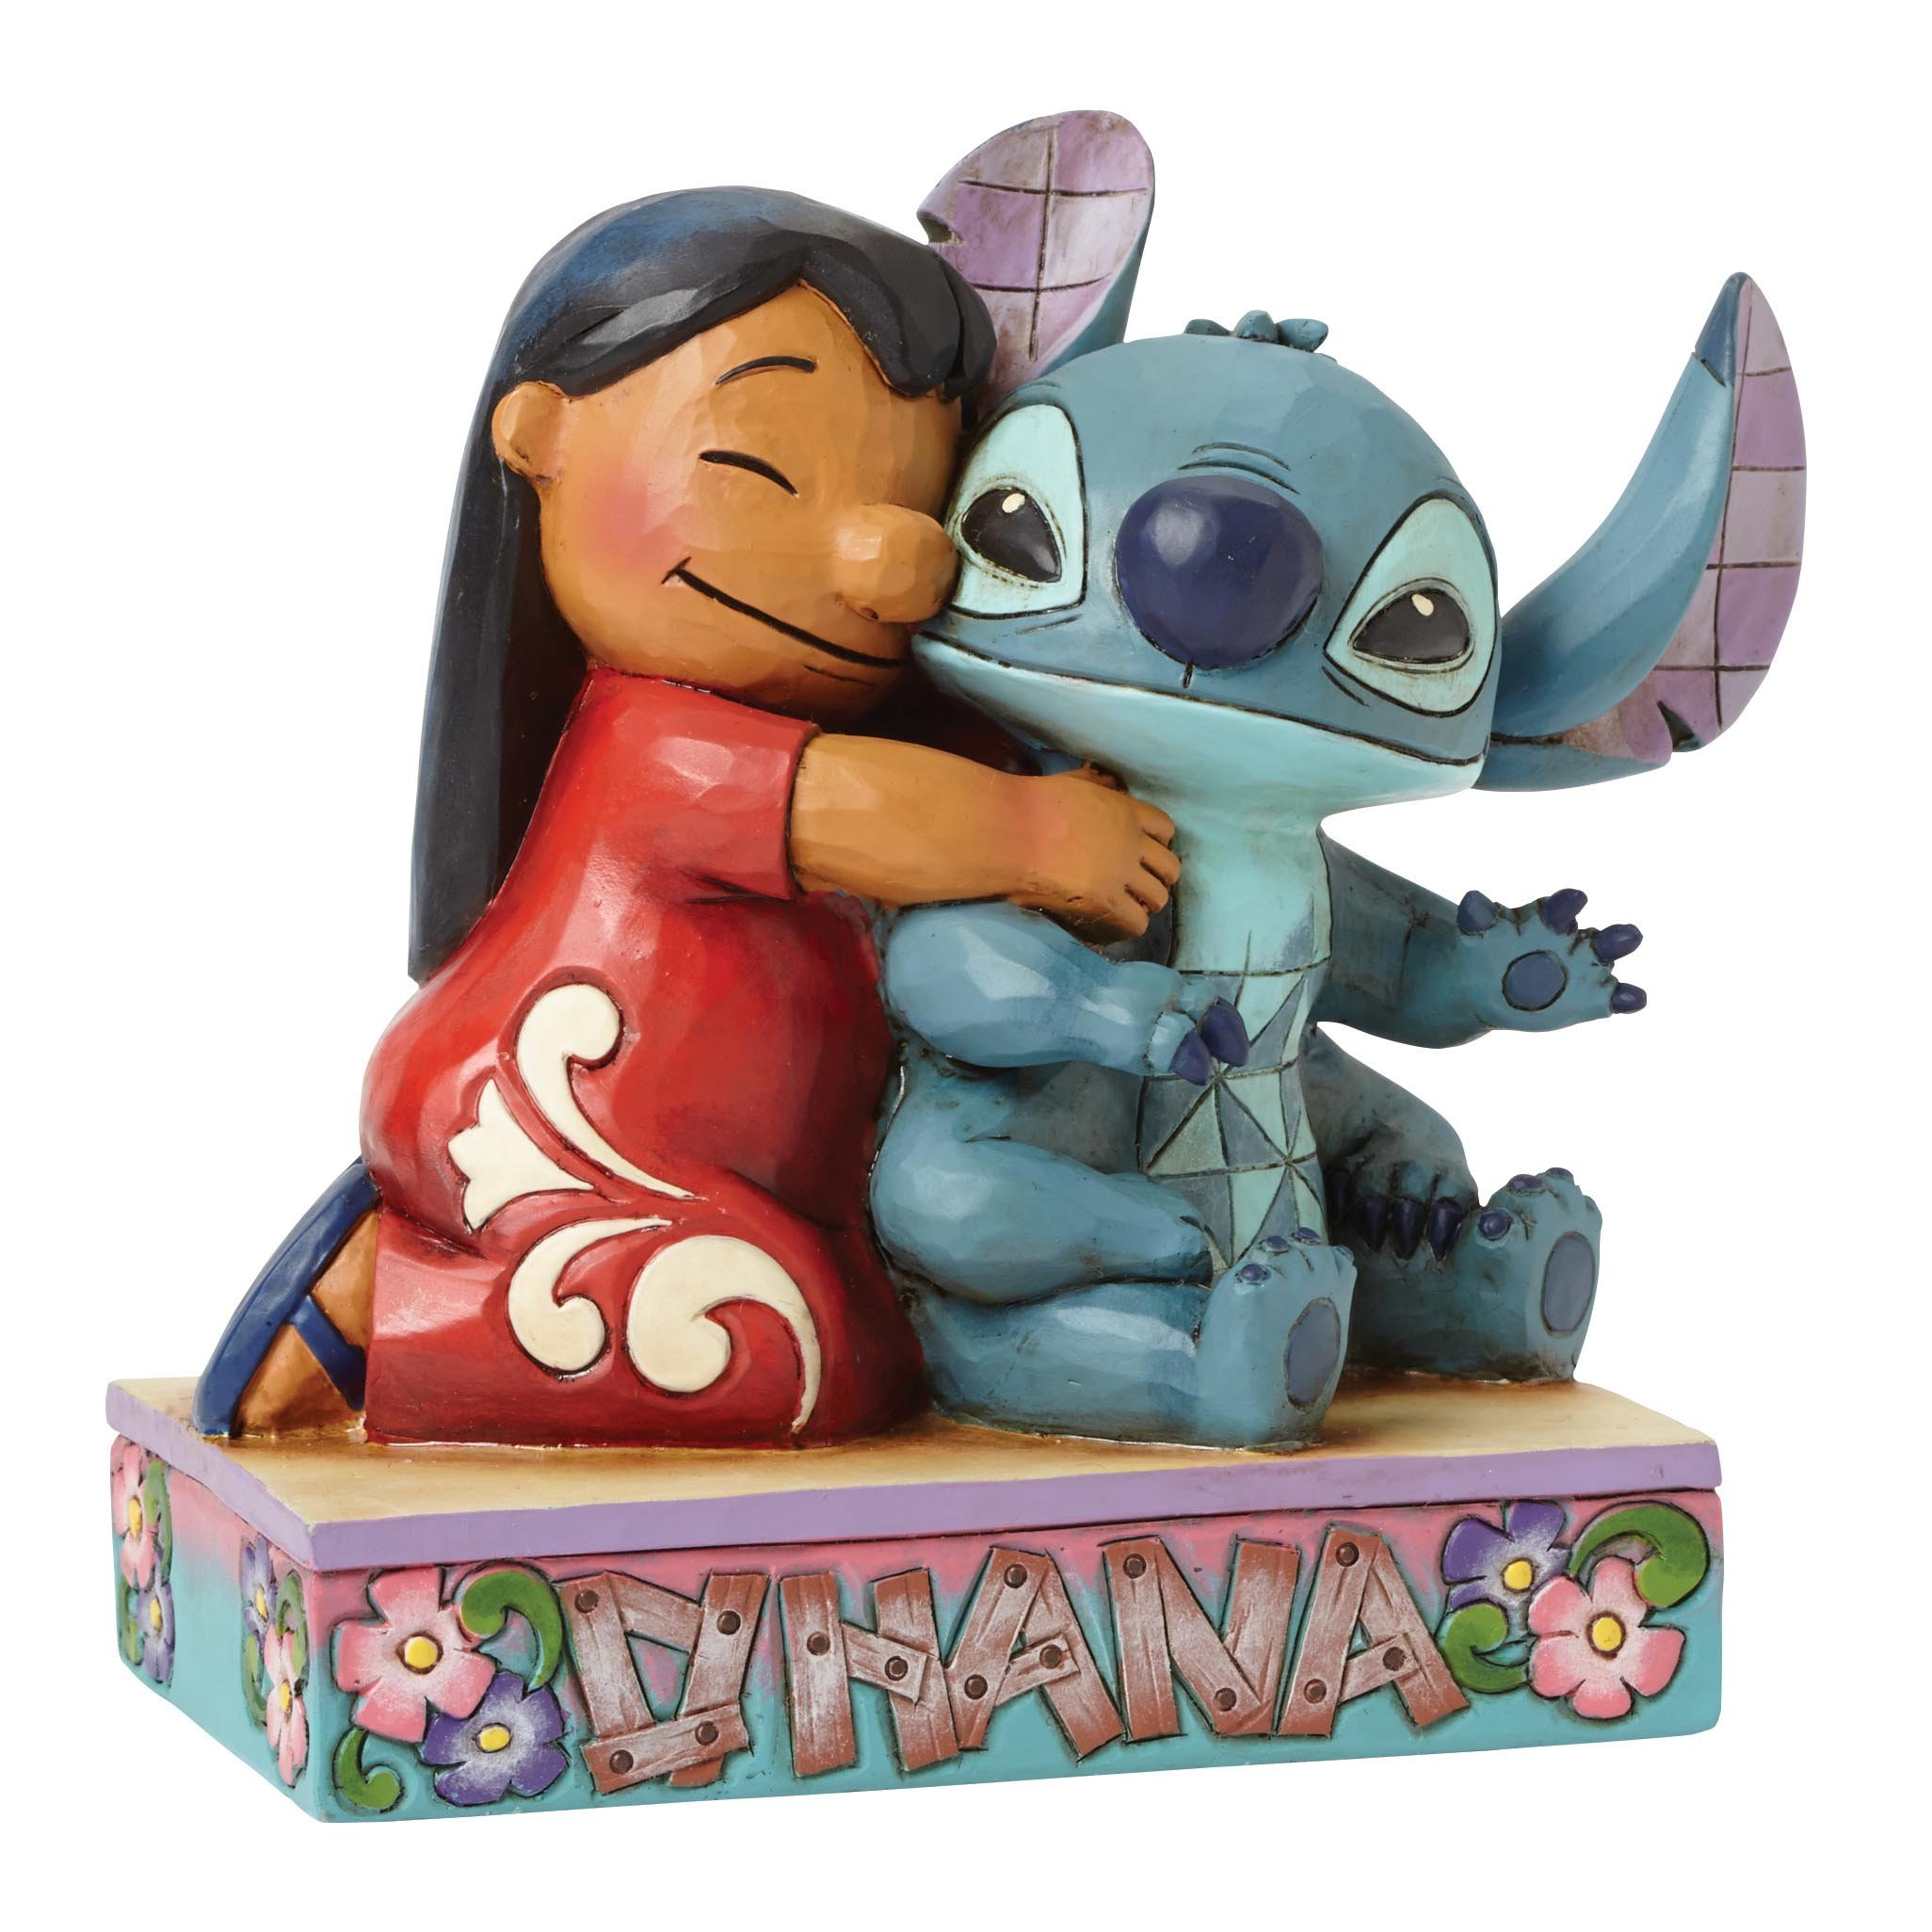 Disney Traditions by Jim Shore Lilo and Stitch Stone Resin Figurine, 4.875'' by Enesco